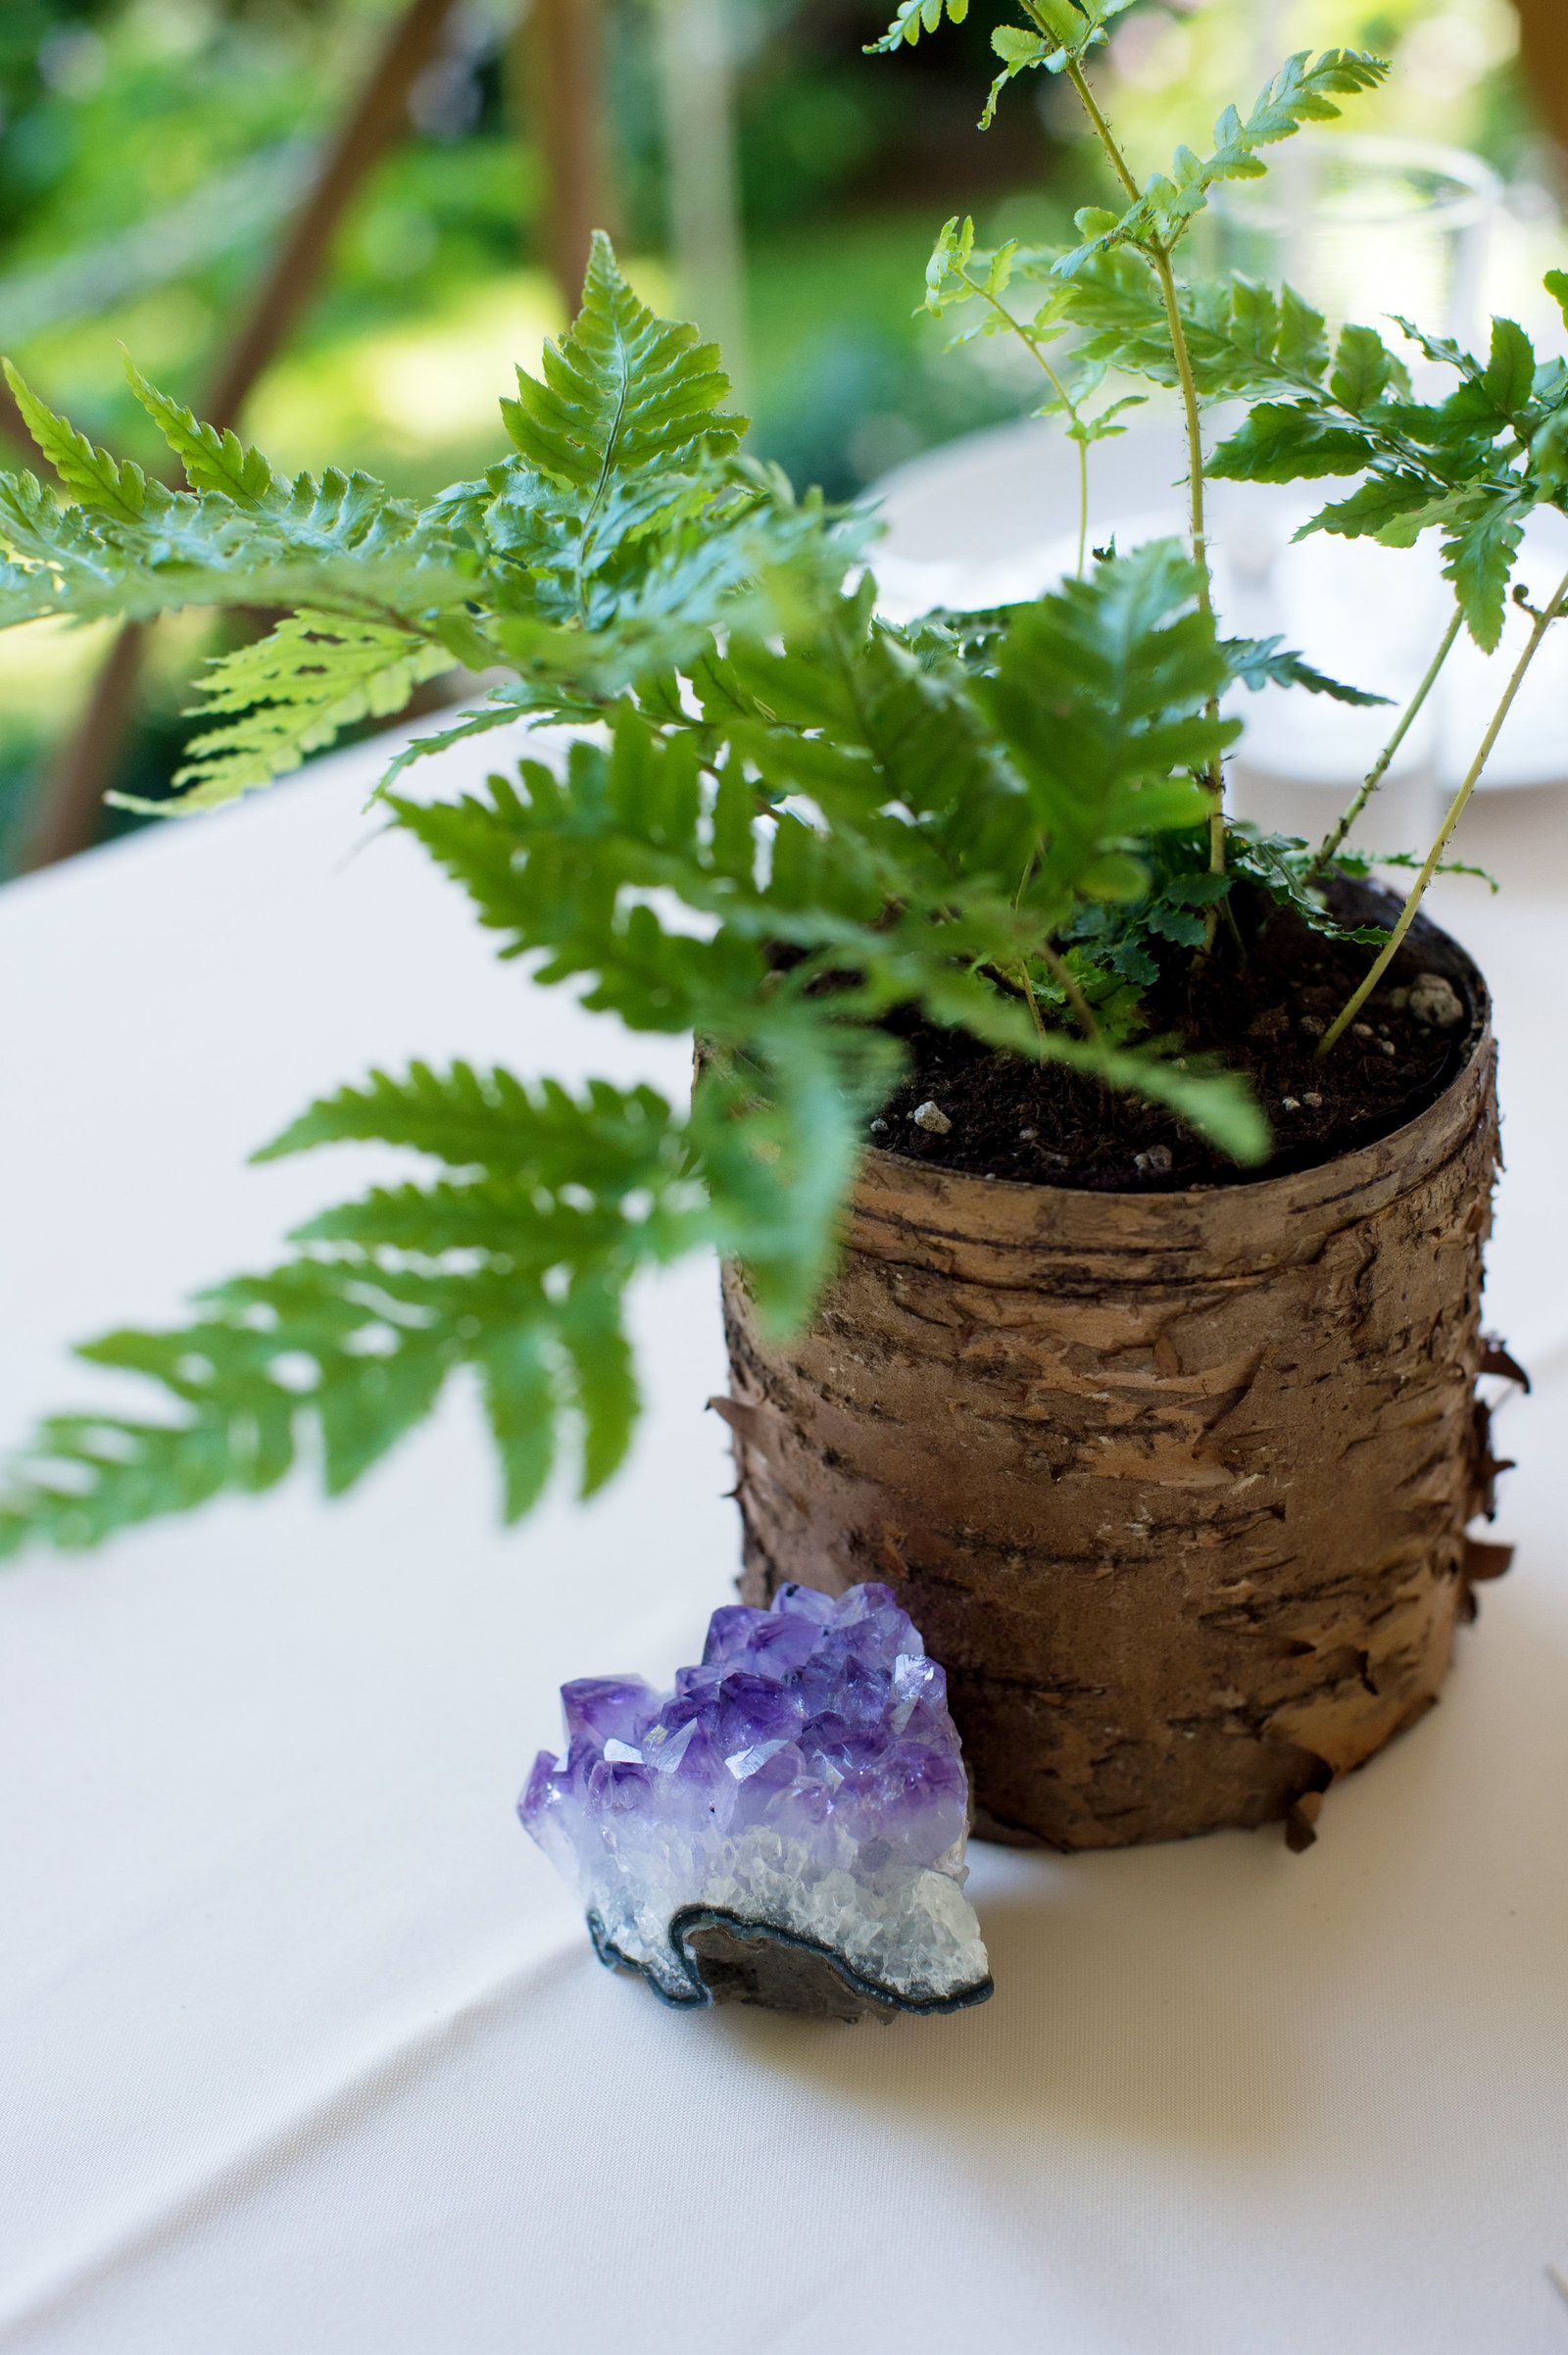 amethyst and a fern for the wedding table centerpieces